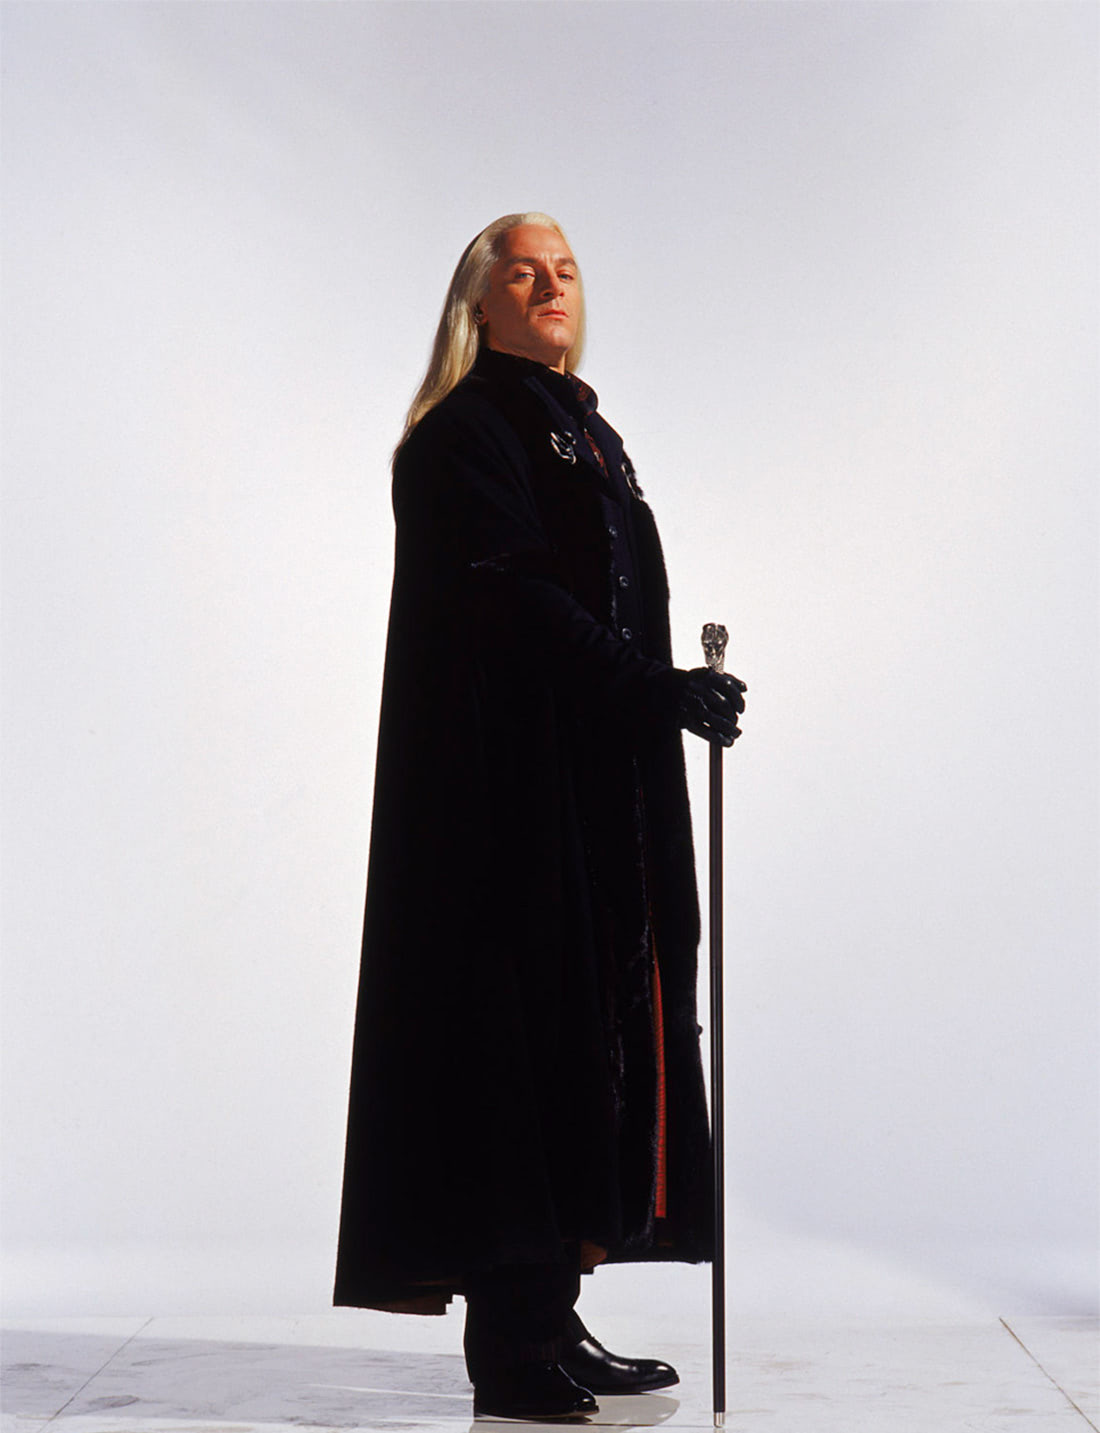 Portrait of Lucius Malfoy